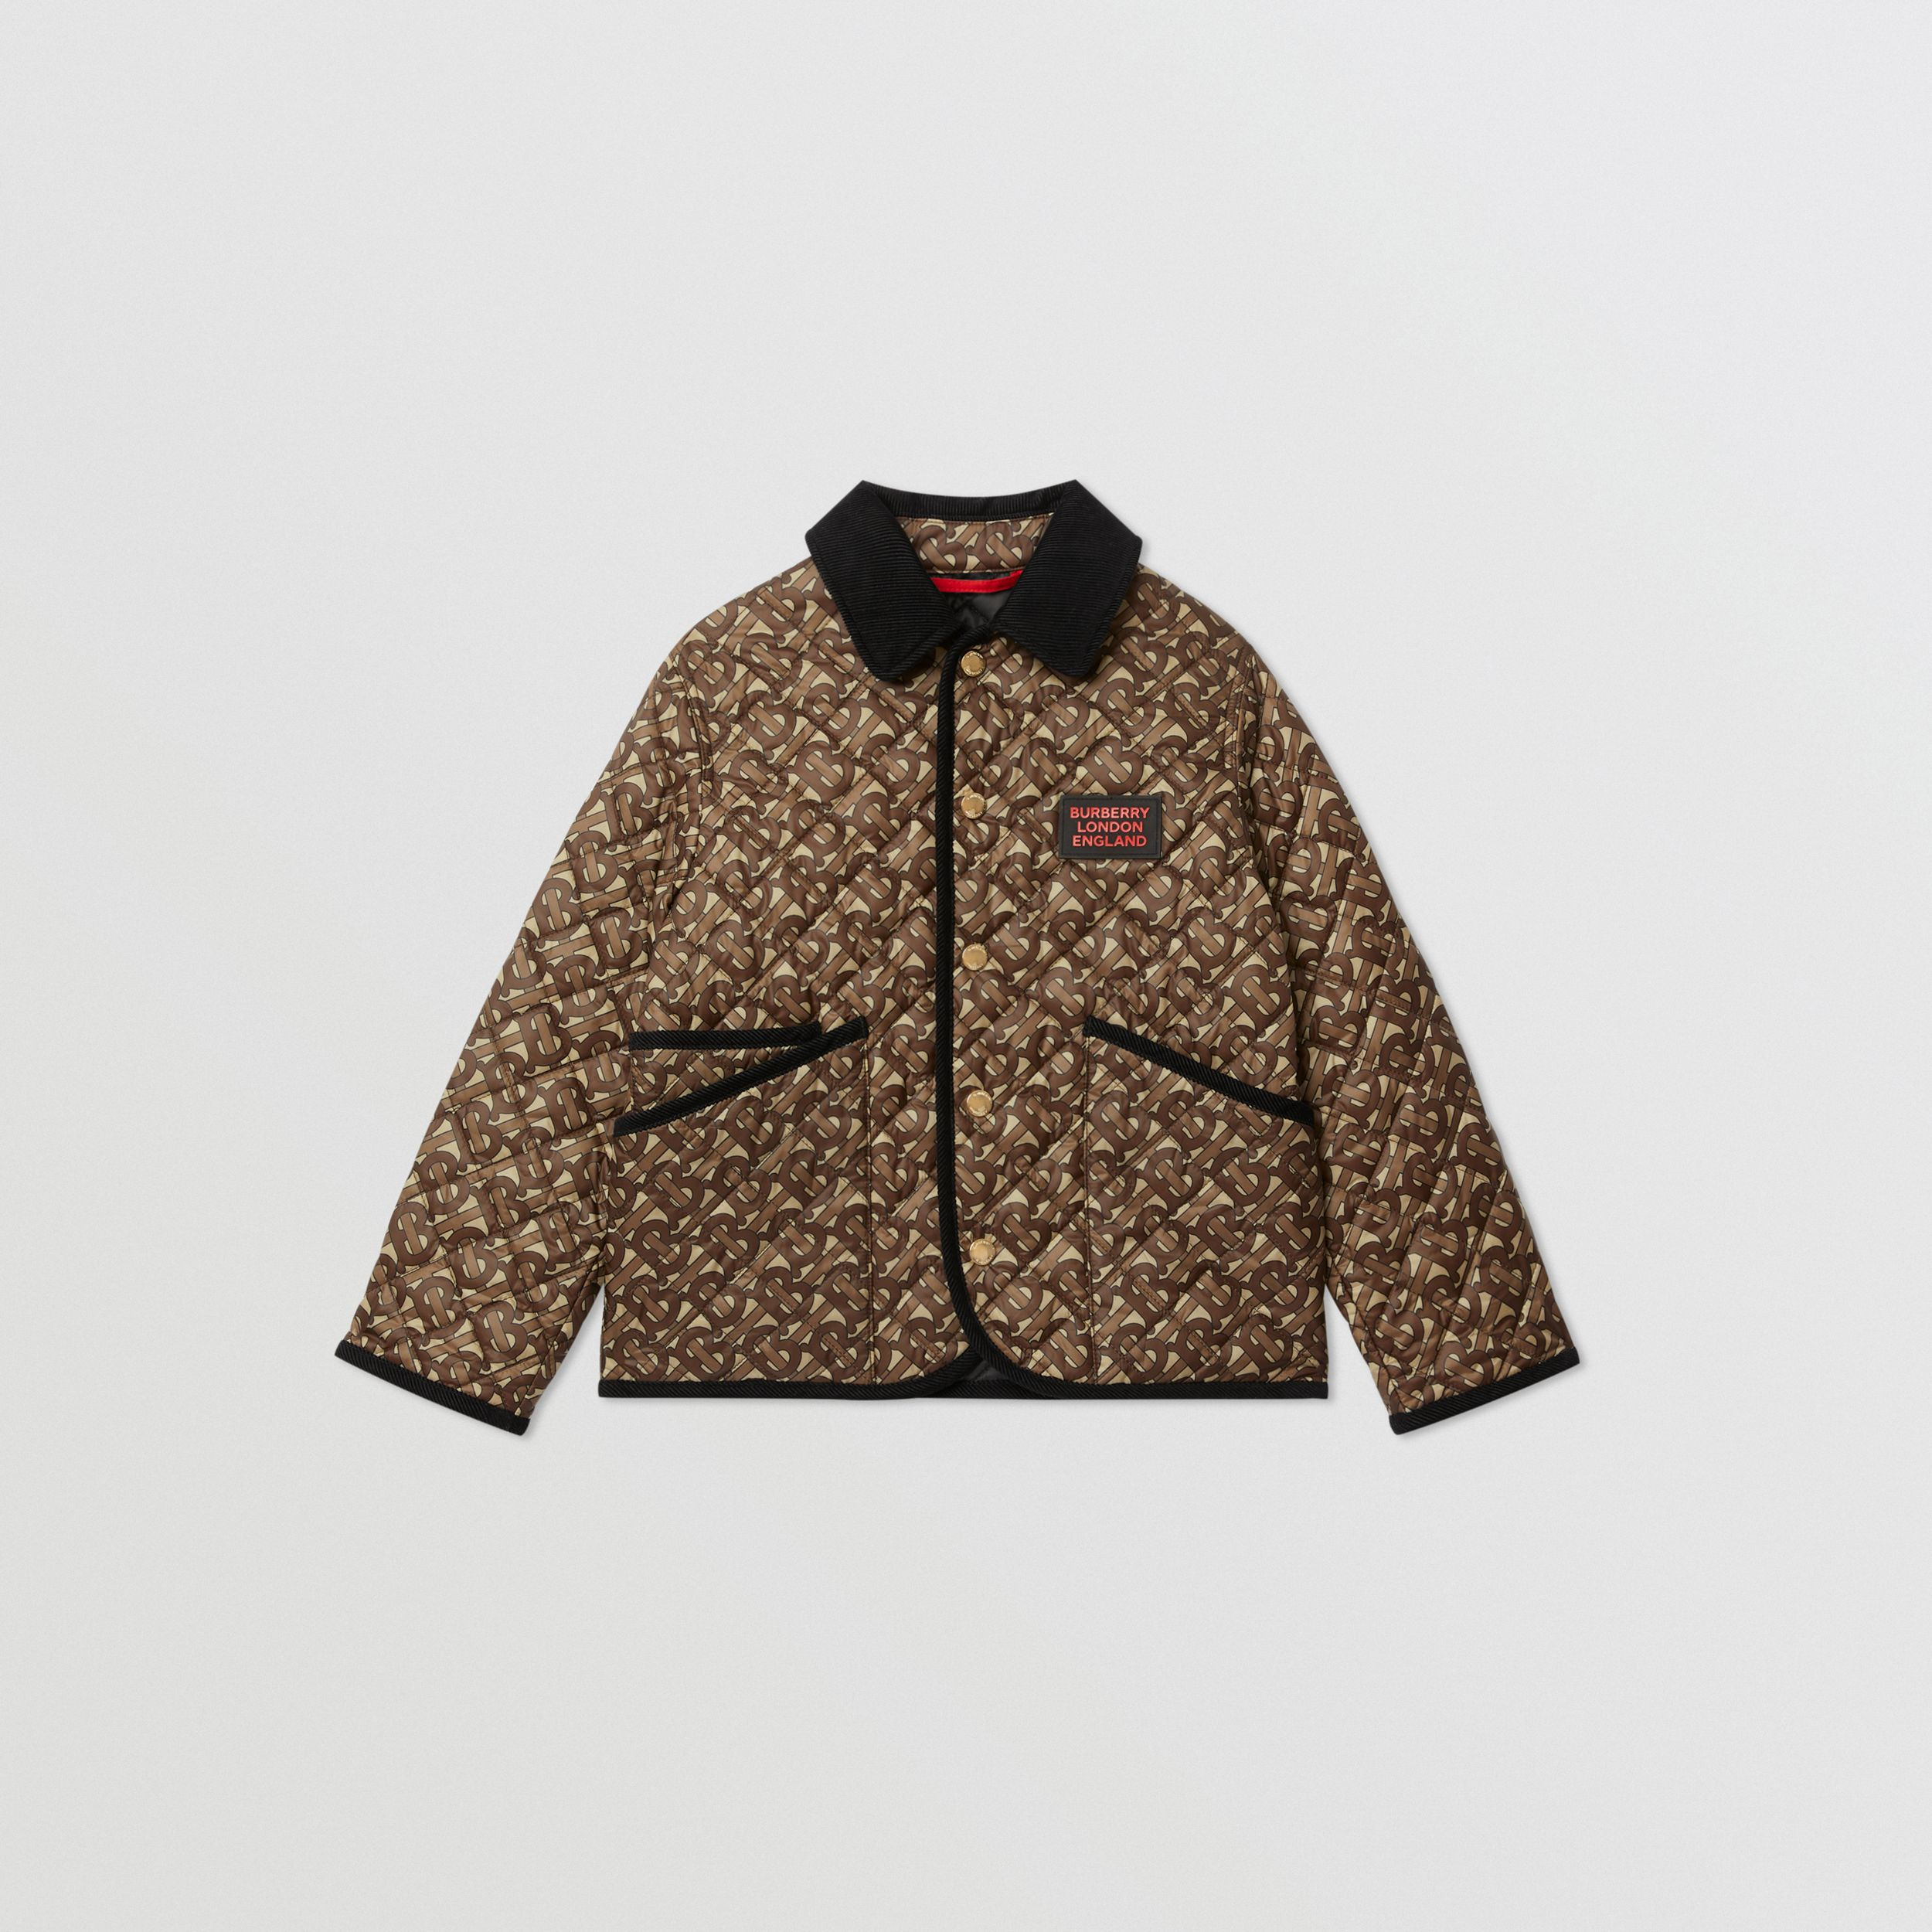 Monogram Print Diamond Quilted Jacket in Bridle Brown | Burberry - 1